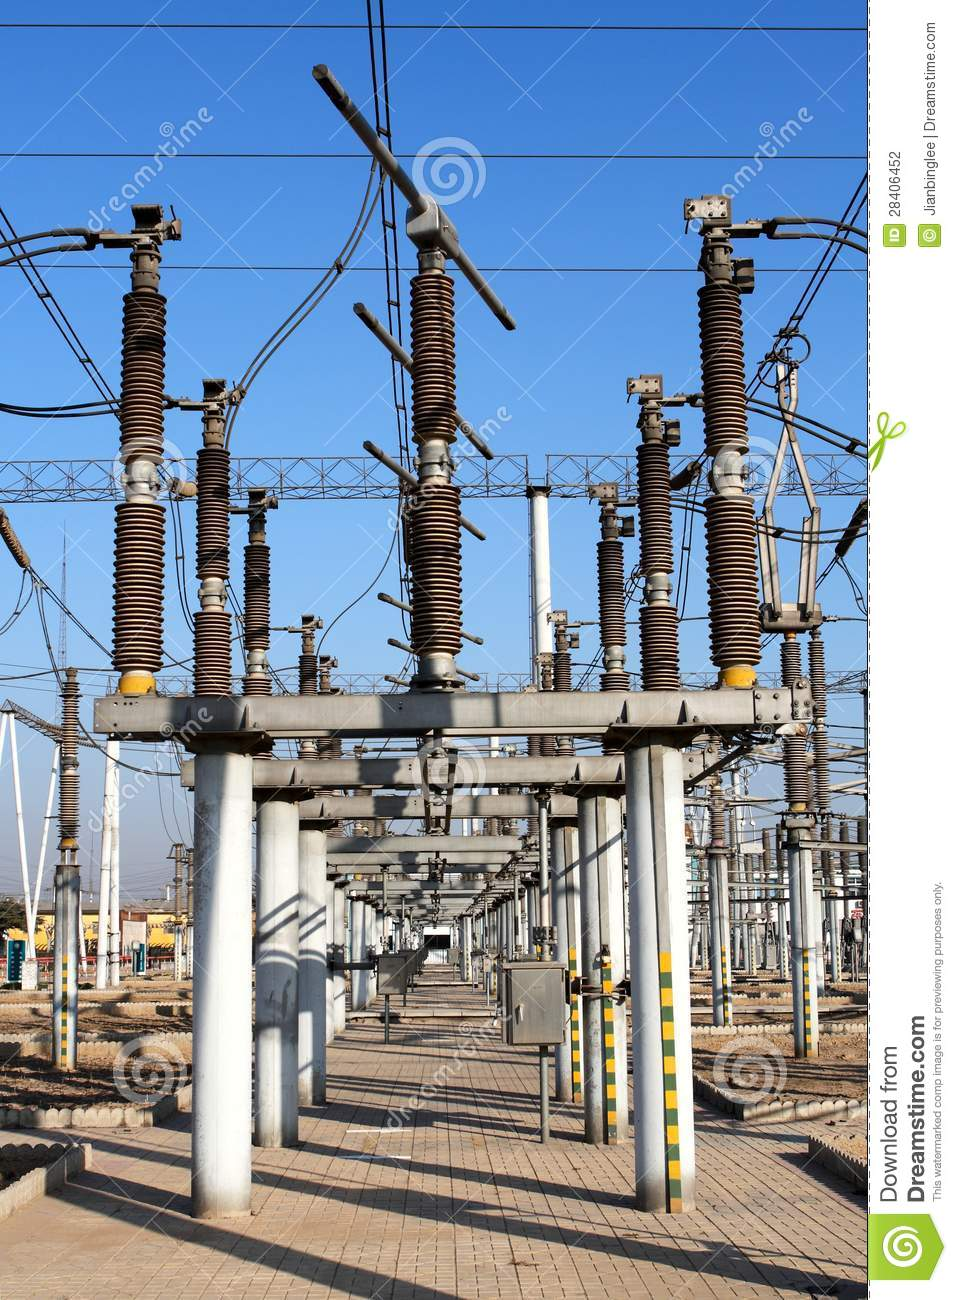 Belyea Company Electric Power Systems Easton Pa: Substation Equipment Gallery